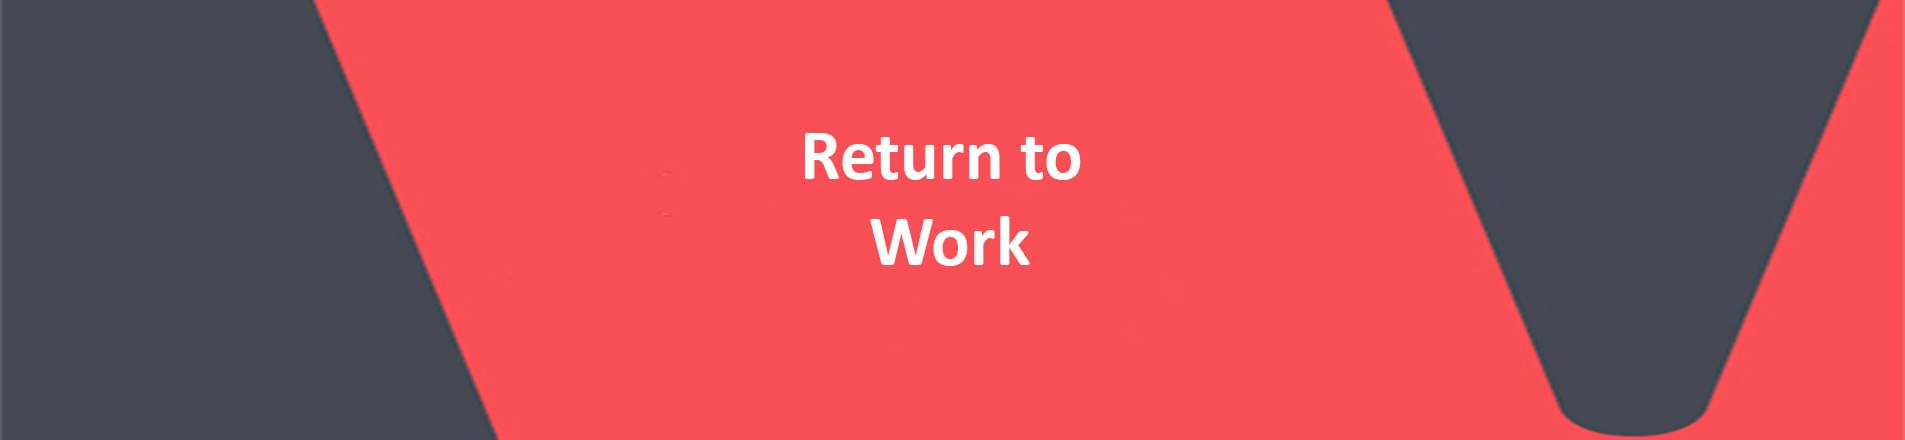 Image of the words return to work on a red background